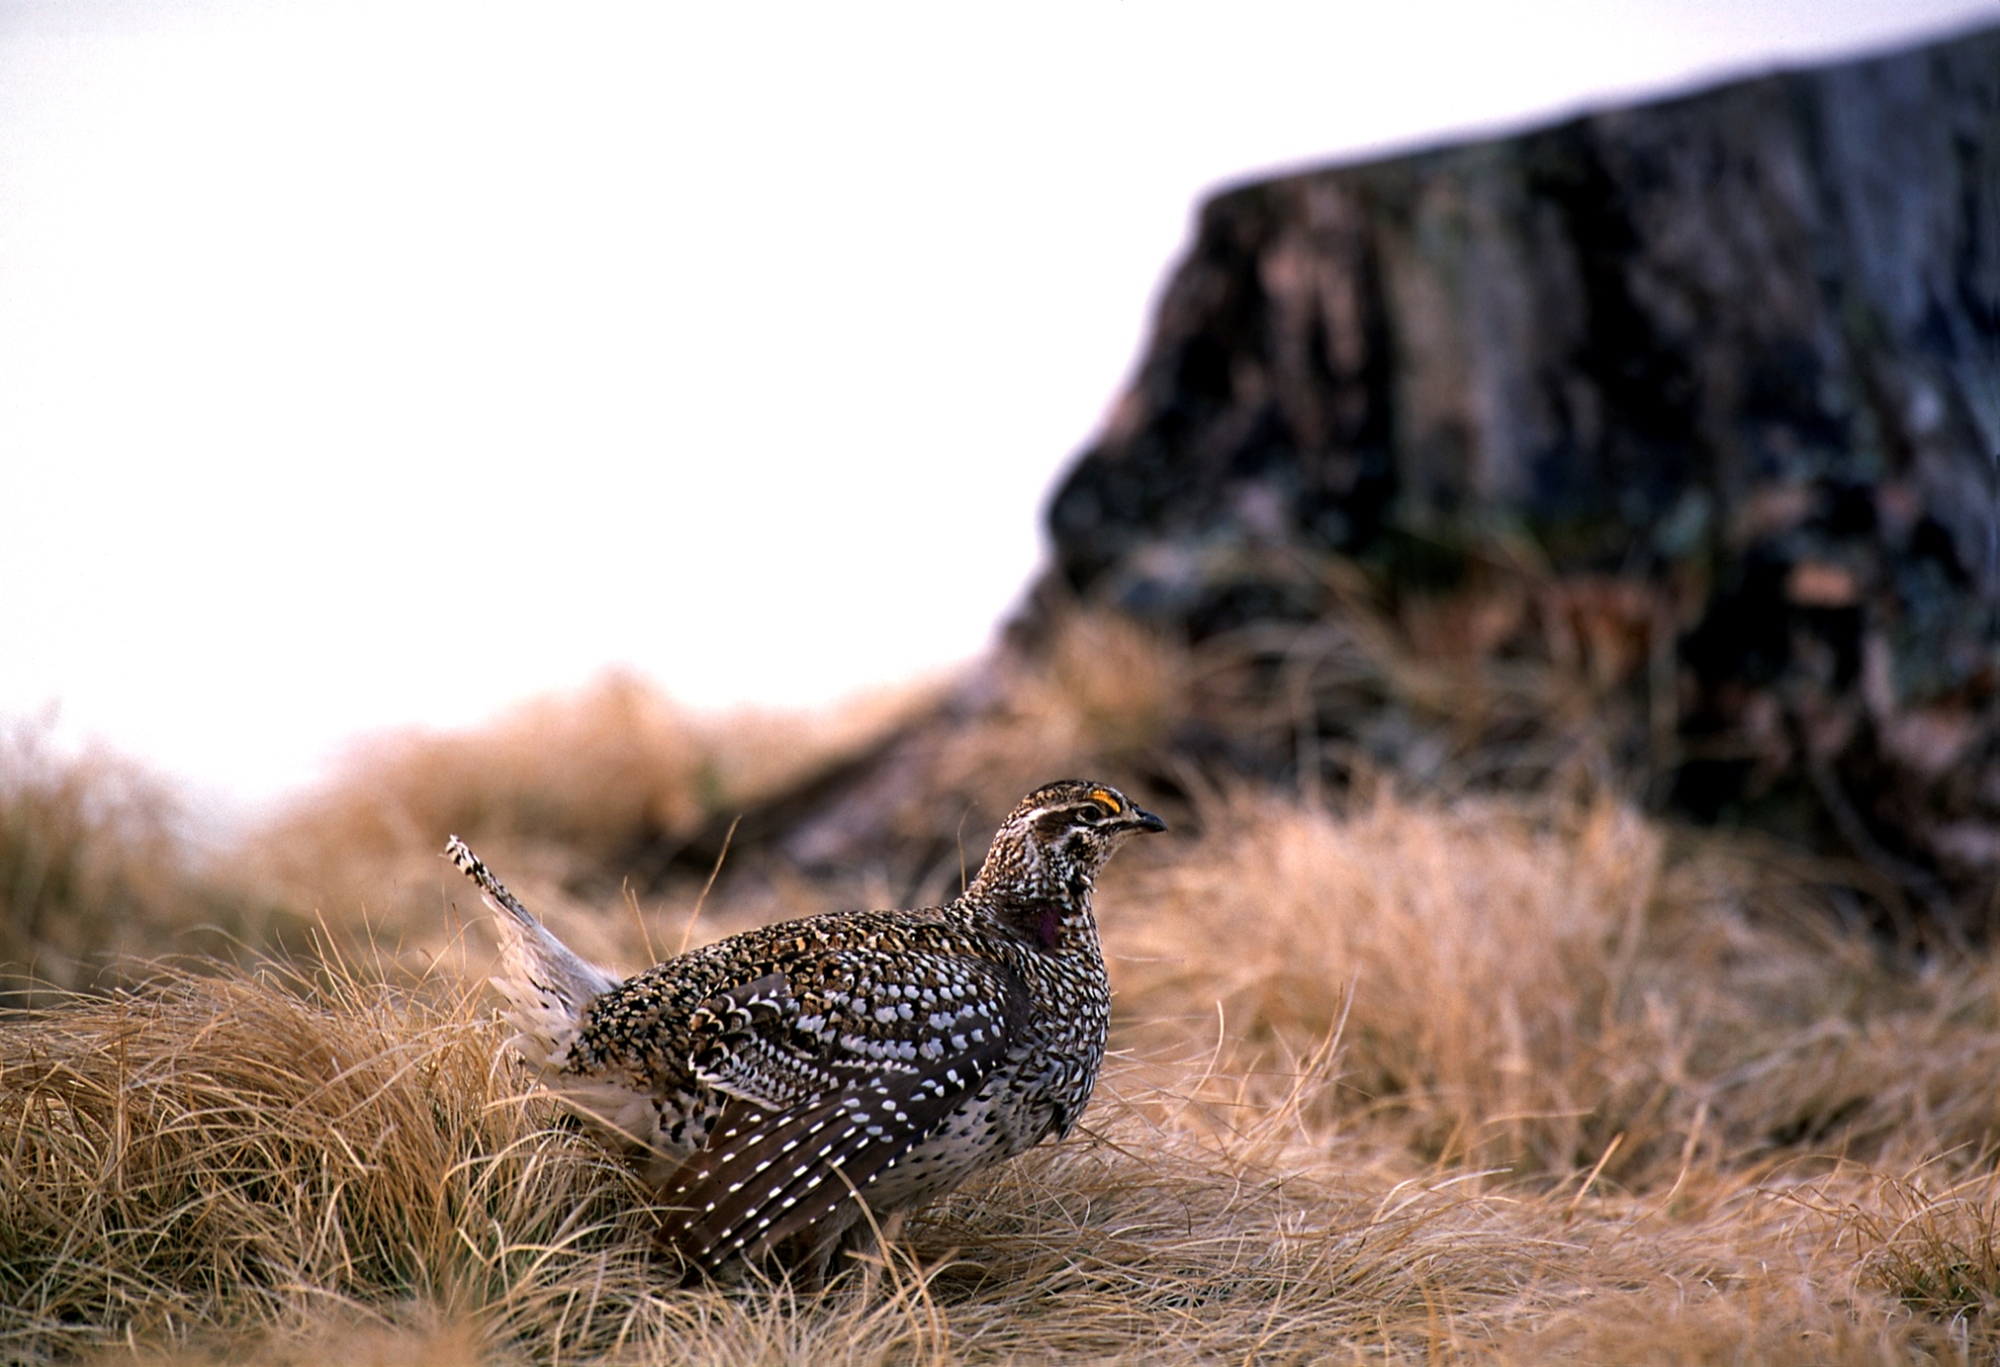 The Michigan DNR Hunting Access Program is available in parts of Chippewa and Mackinac counties in the eastern U.P. for hunting sharp-tailed grouse.